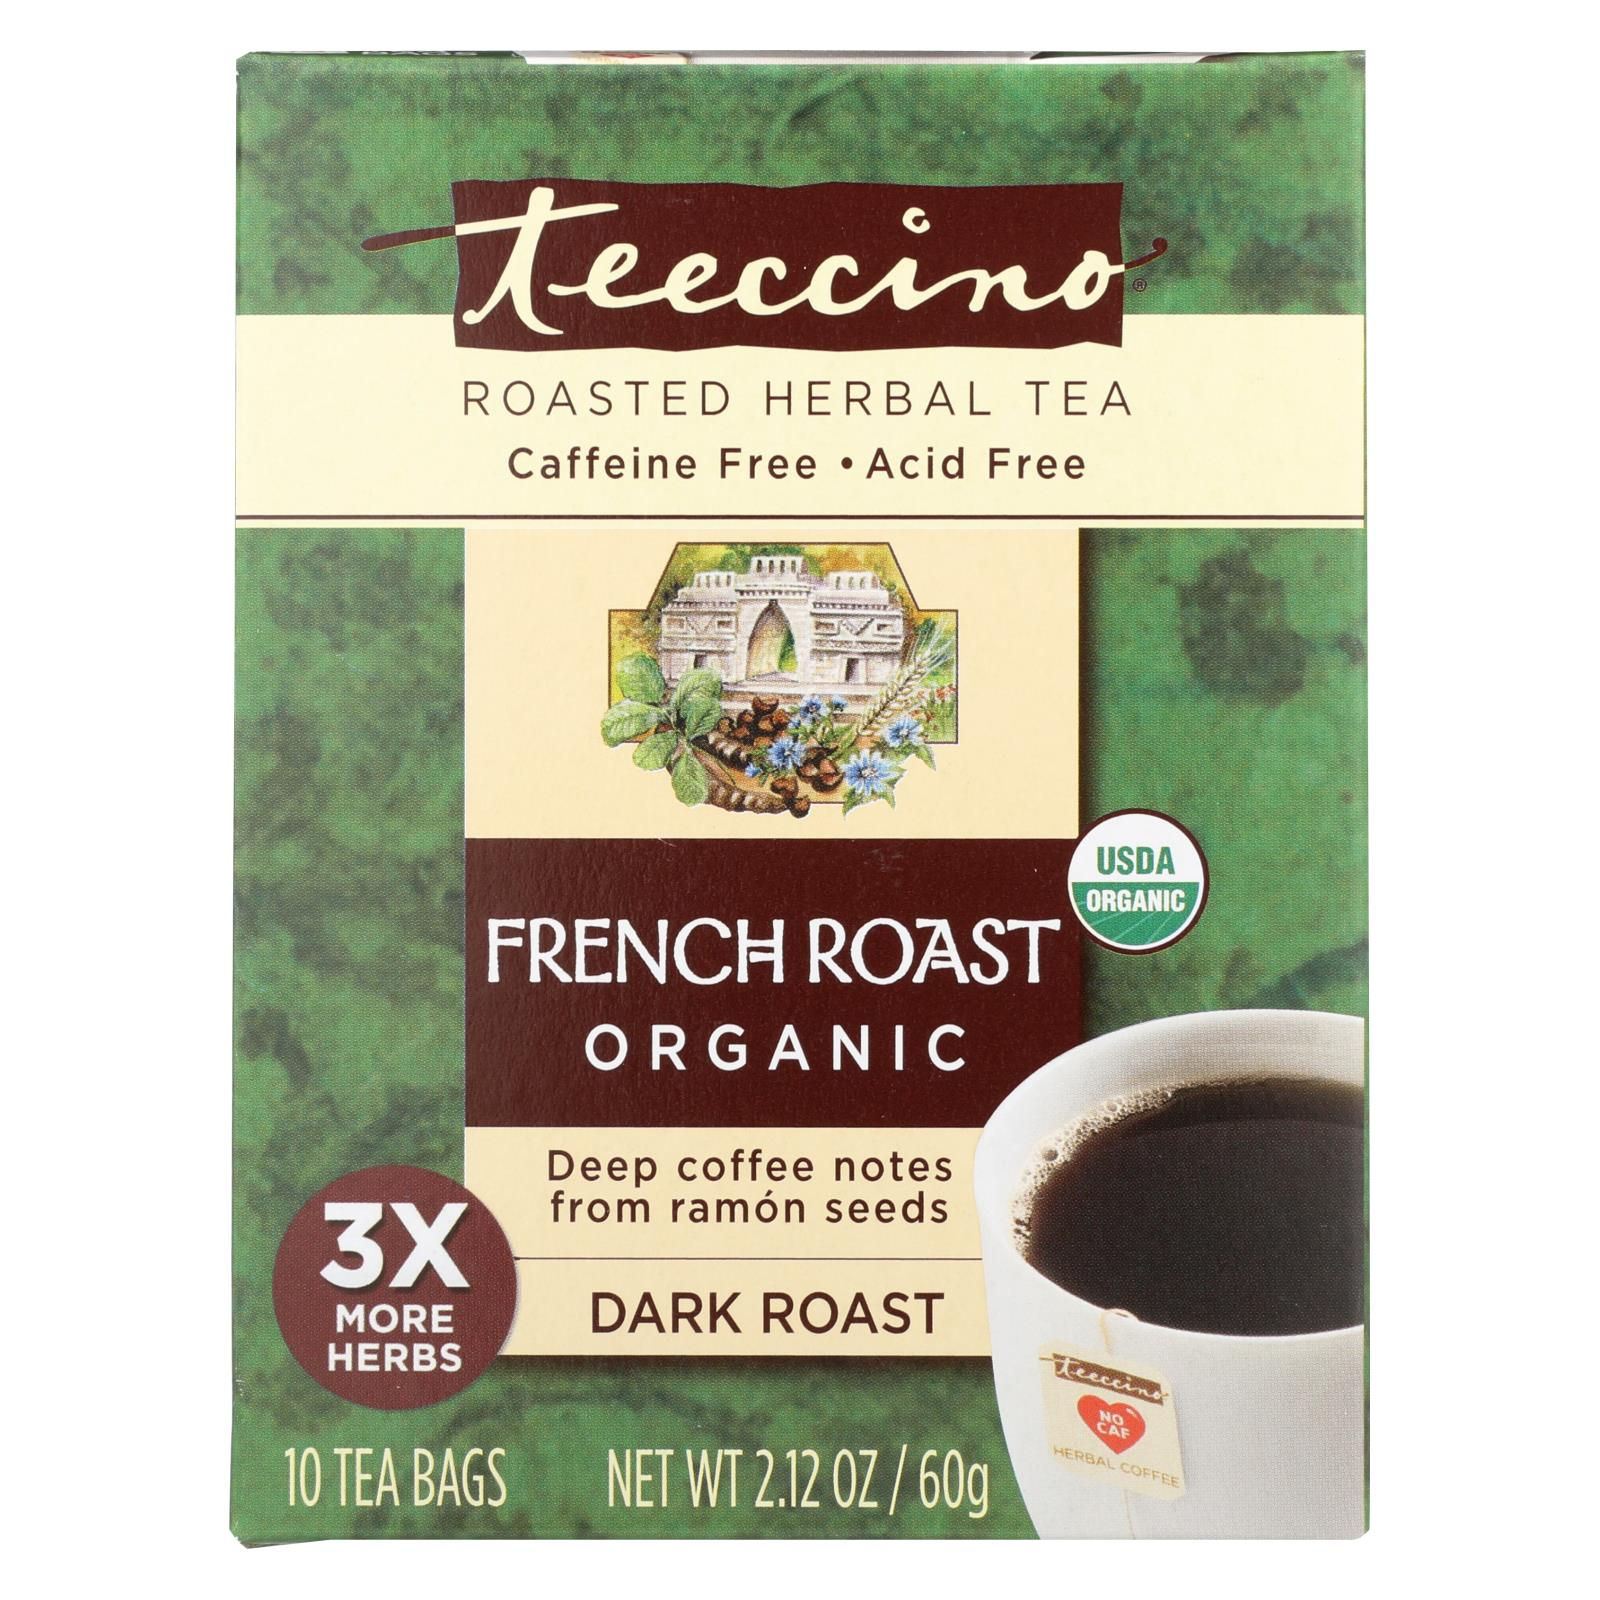 Buy Teeccino French Roast Herbal Coffee Dark Roast - 10 Tea Bags - Case of 6 - Beverages from Veroeco.com